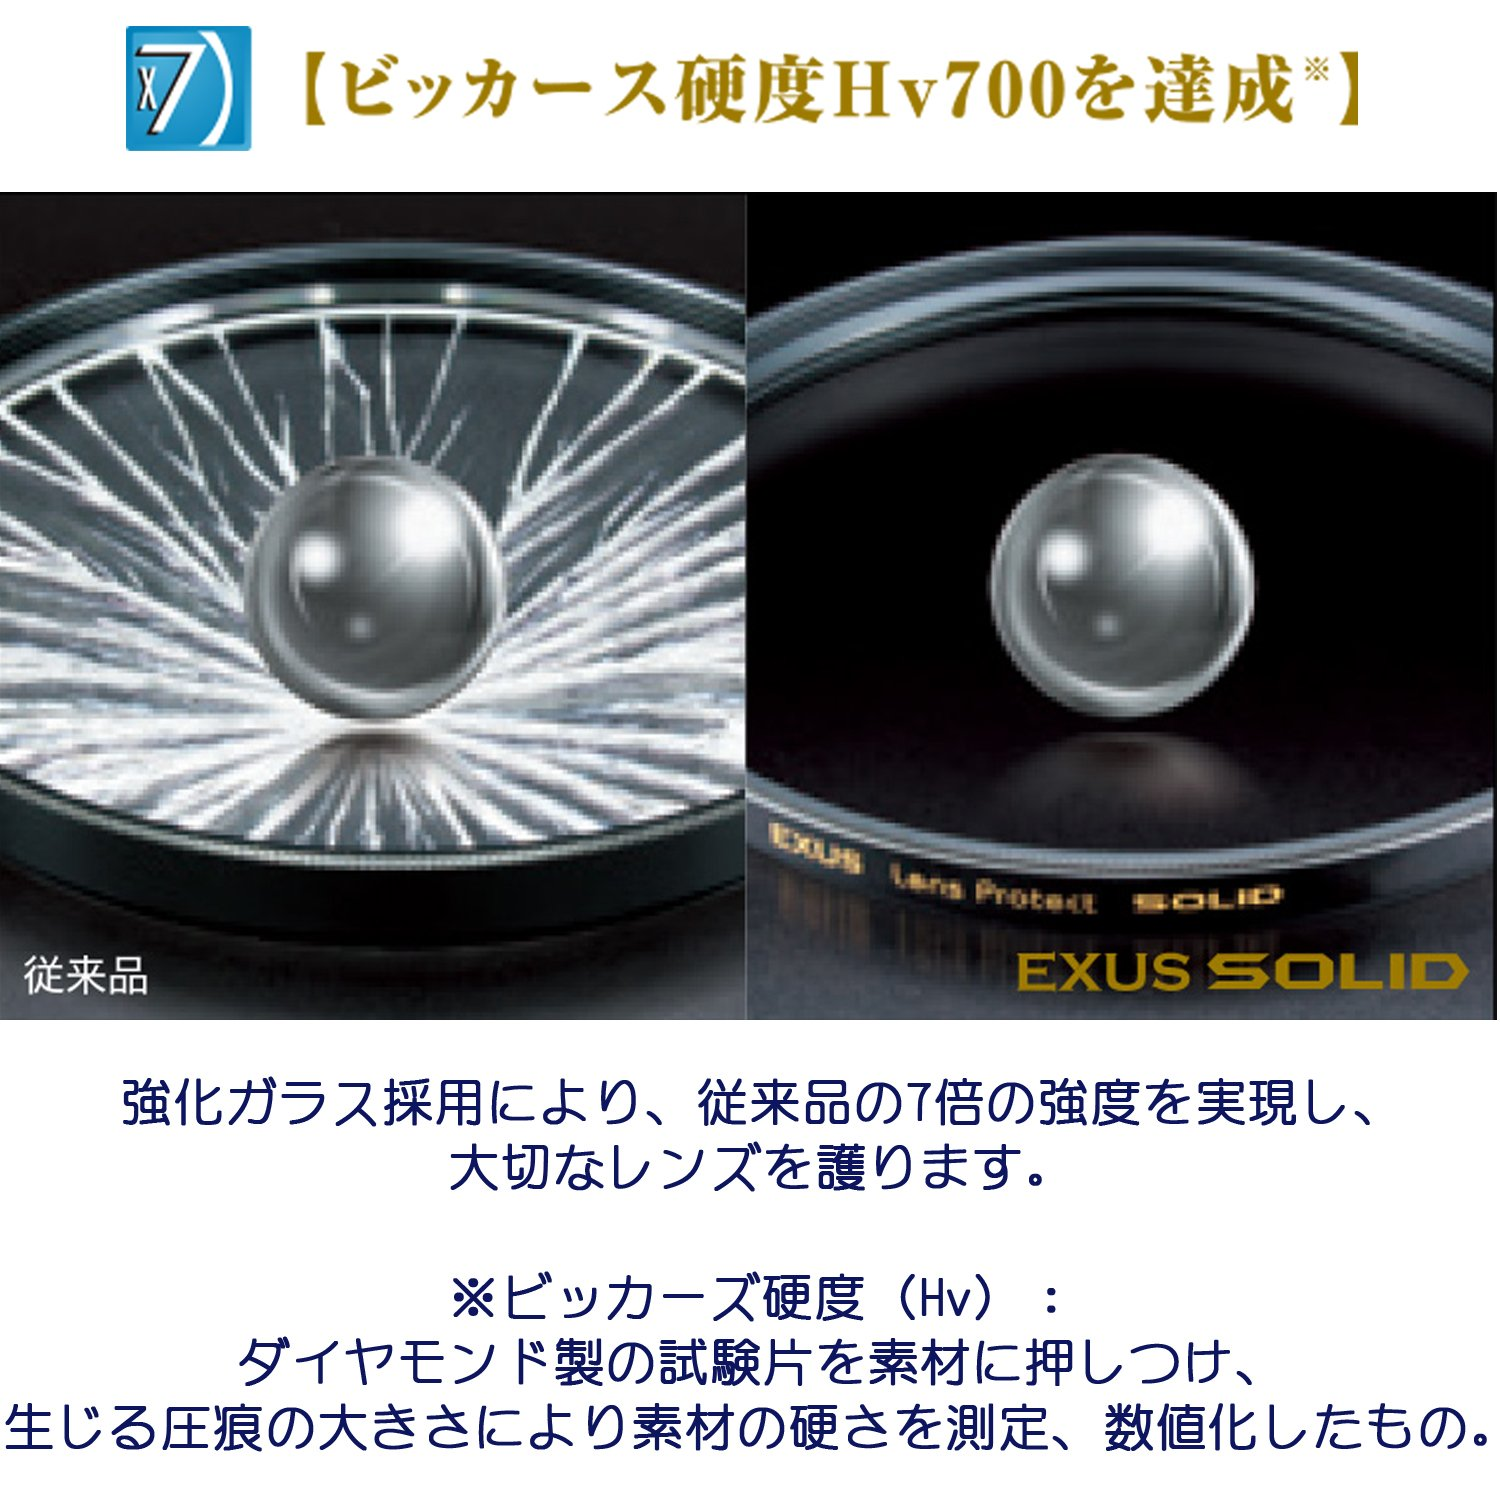 Marumi EXUS SOLID 82mm Lens Protect Filter Anti-Static Hard Coated 82 Made in Japan ''7 X Stronger'' by Marumi (Image #3)